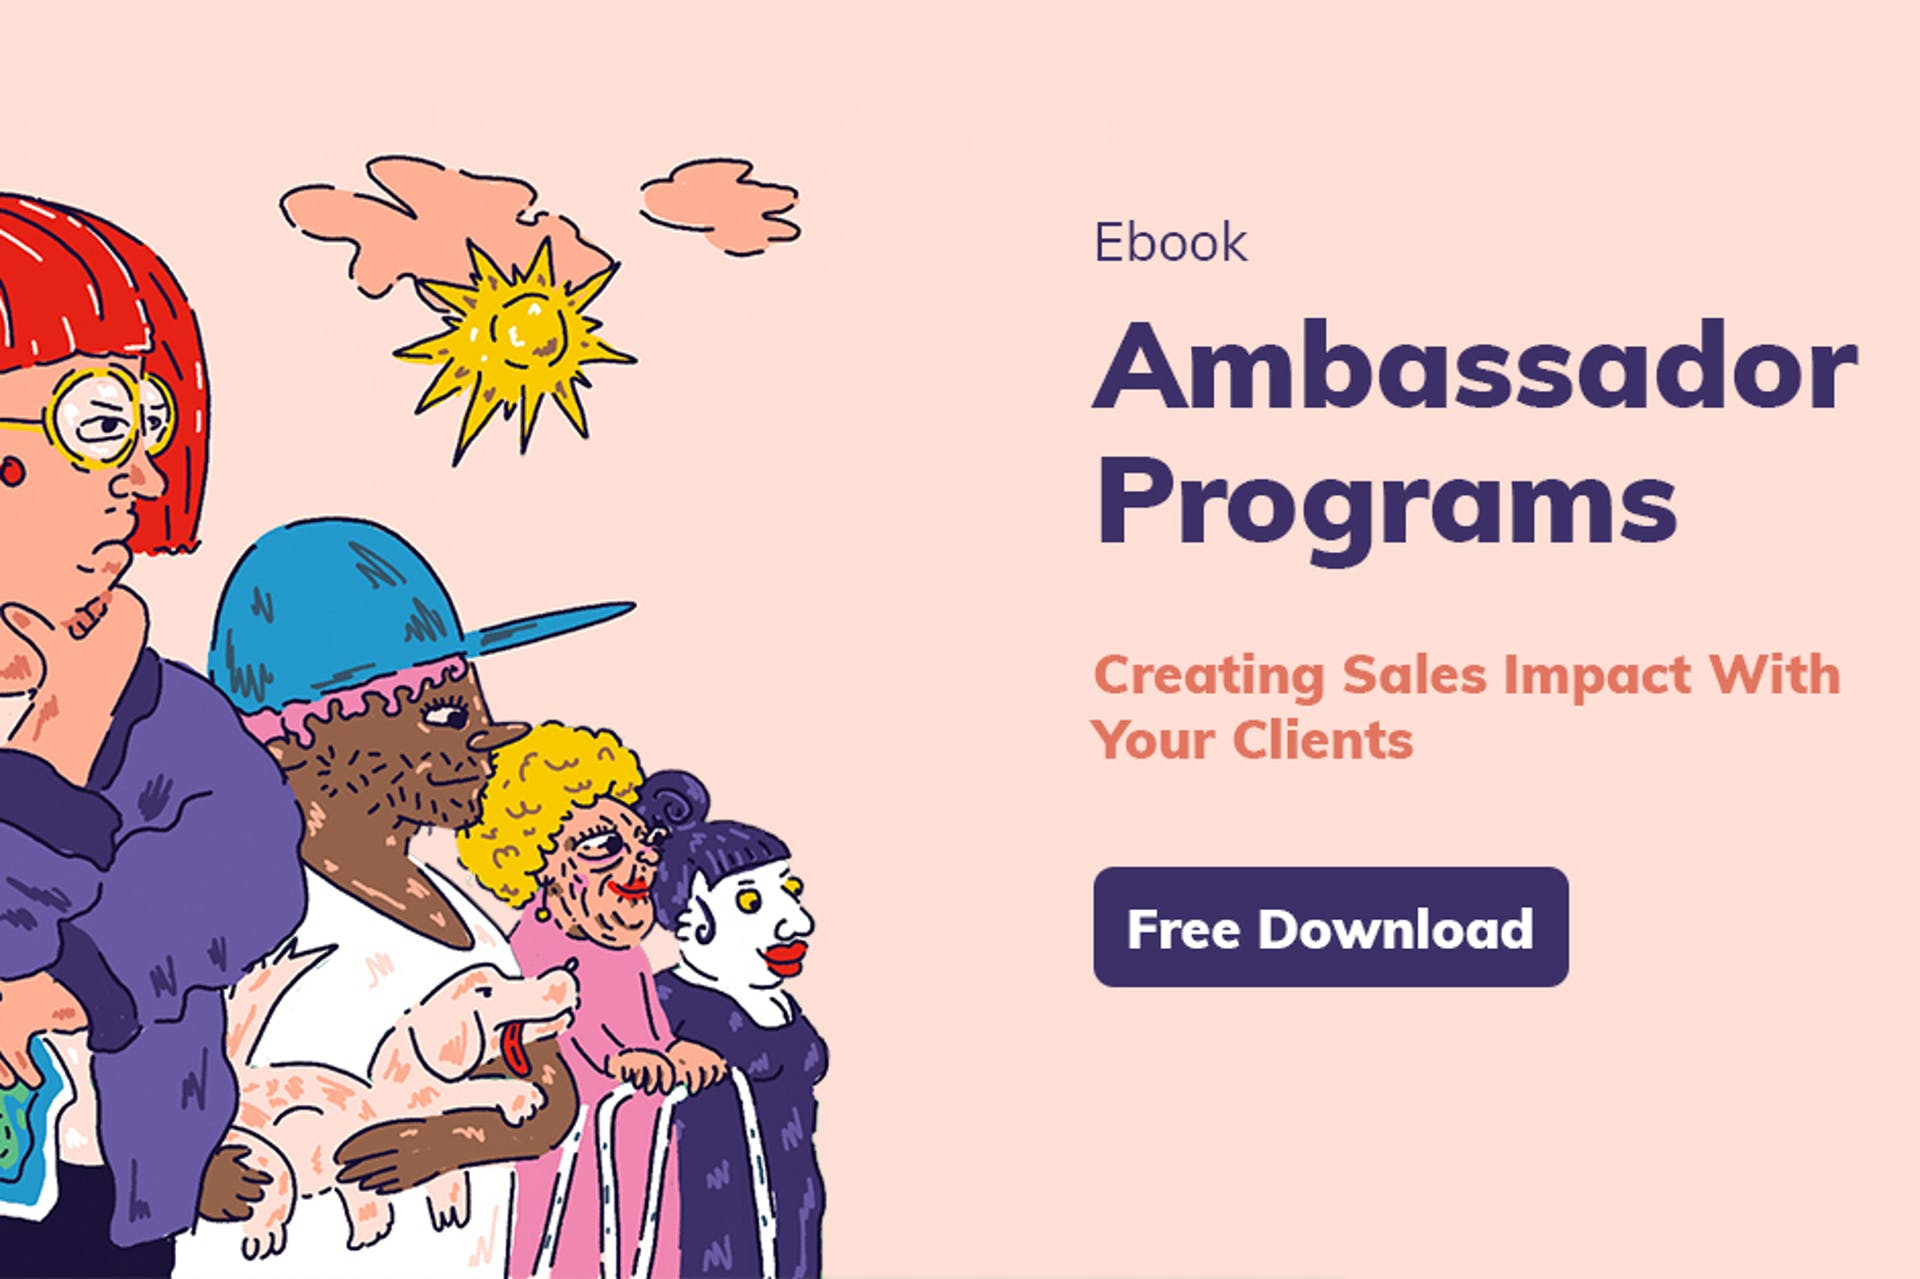 Cover image of the Klear and Meltwater ebook about Ambassador Programs